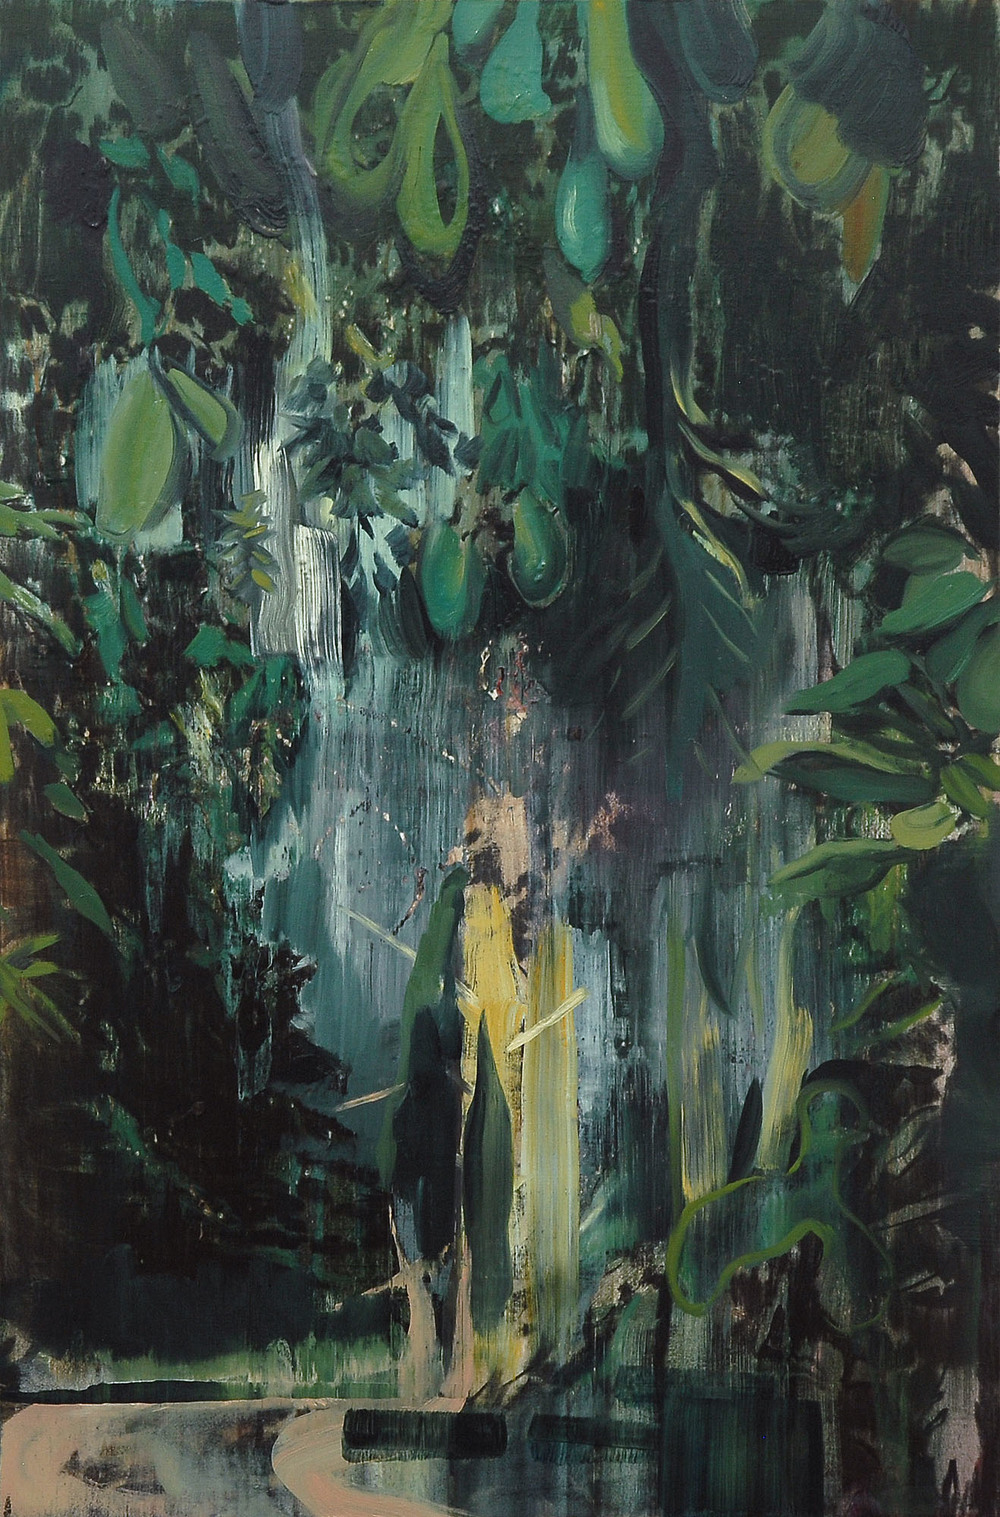 Lu Song 吕松, Through the Woods, 2015, Oil on canvas 布面油画, 120 x 80 cm